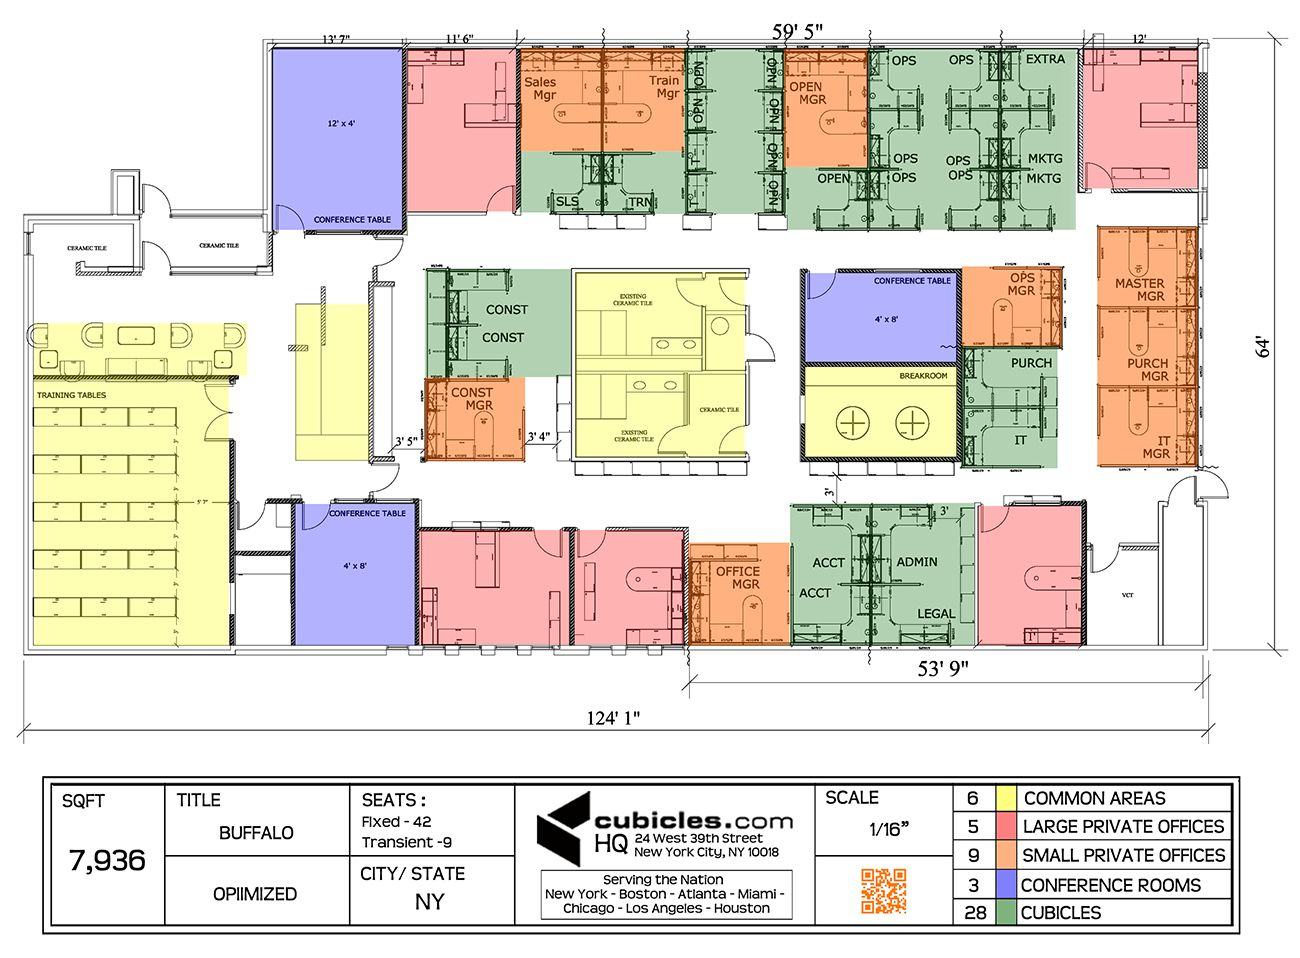 Small Office Building Floor Plans: Office Floor Plans With Cubicles